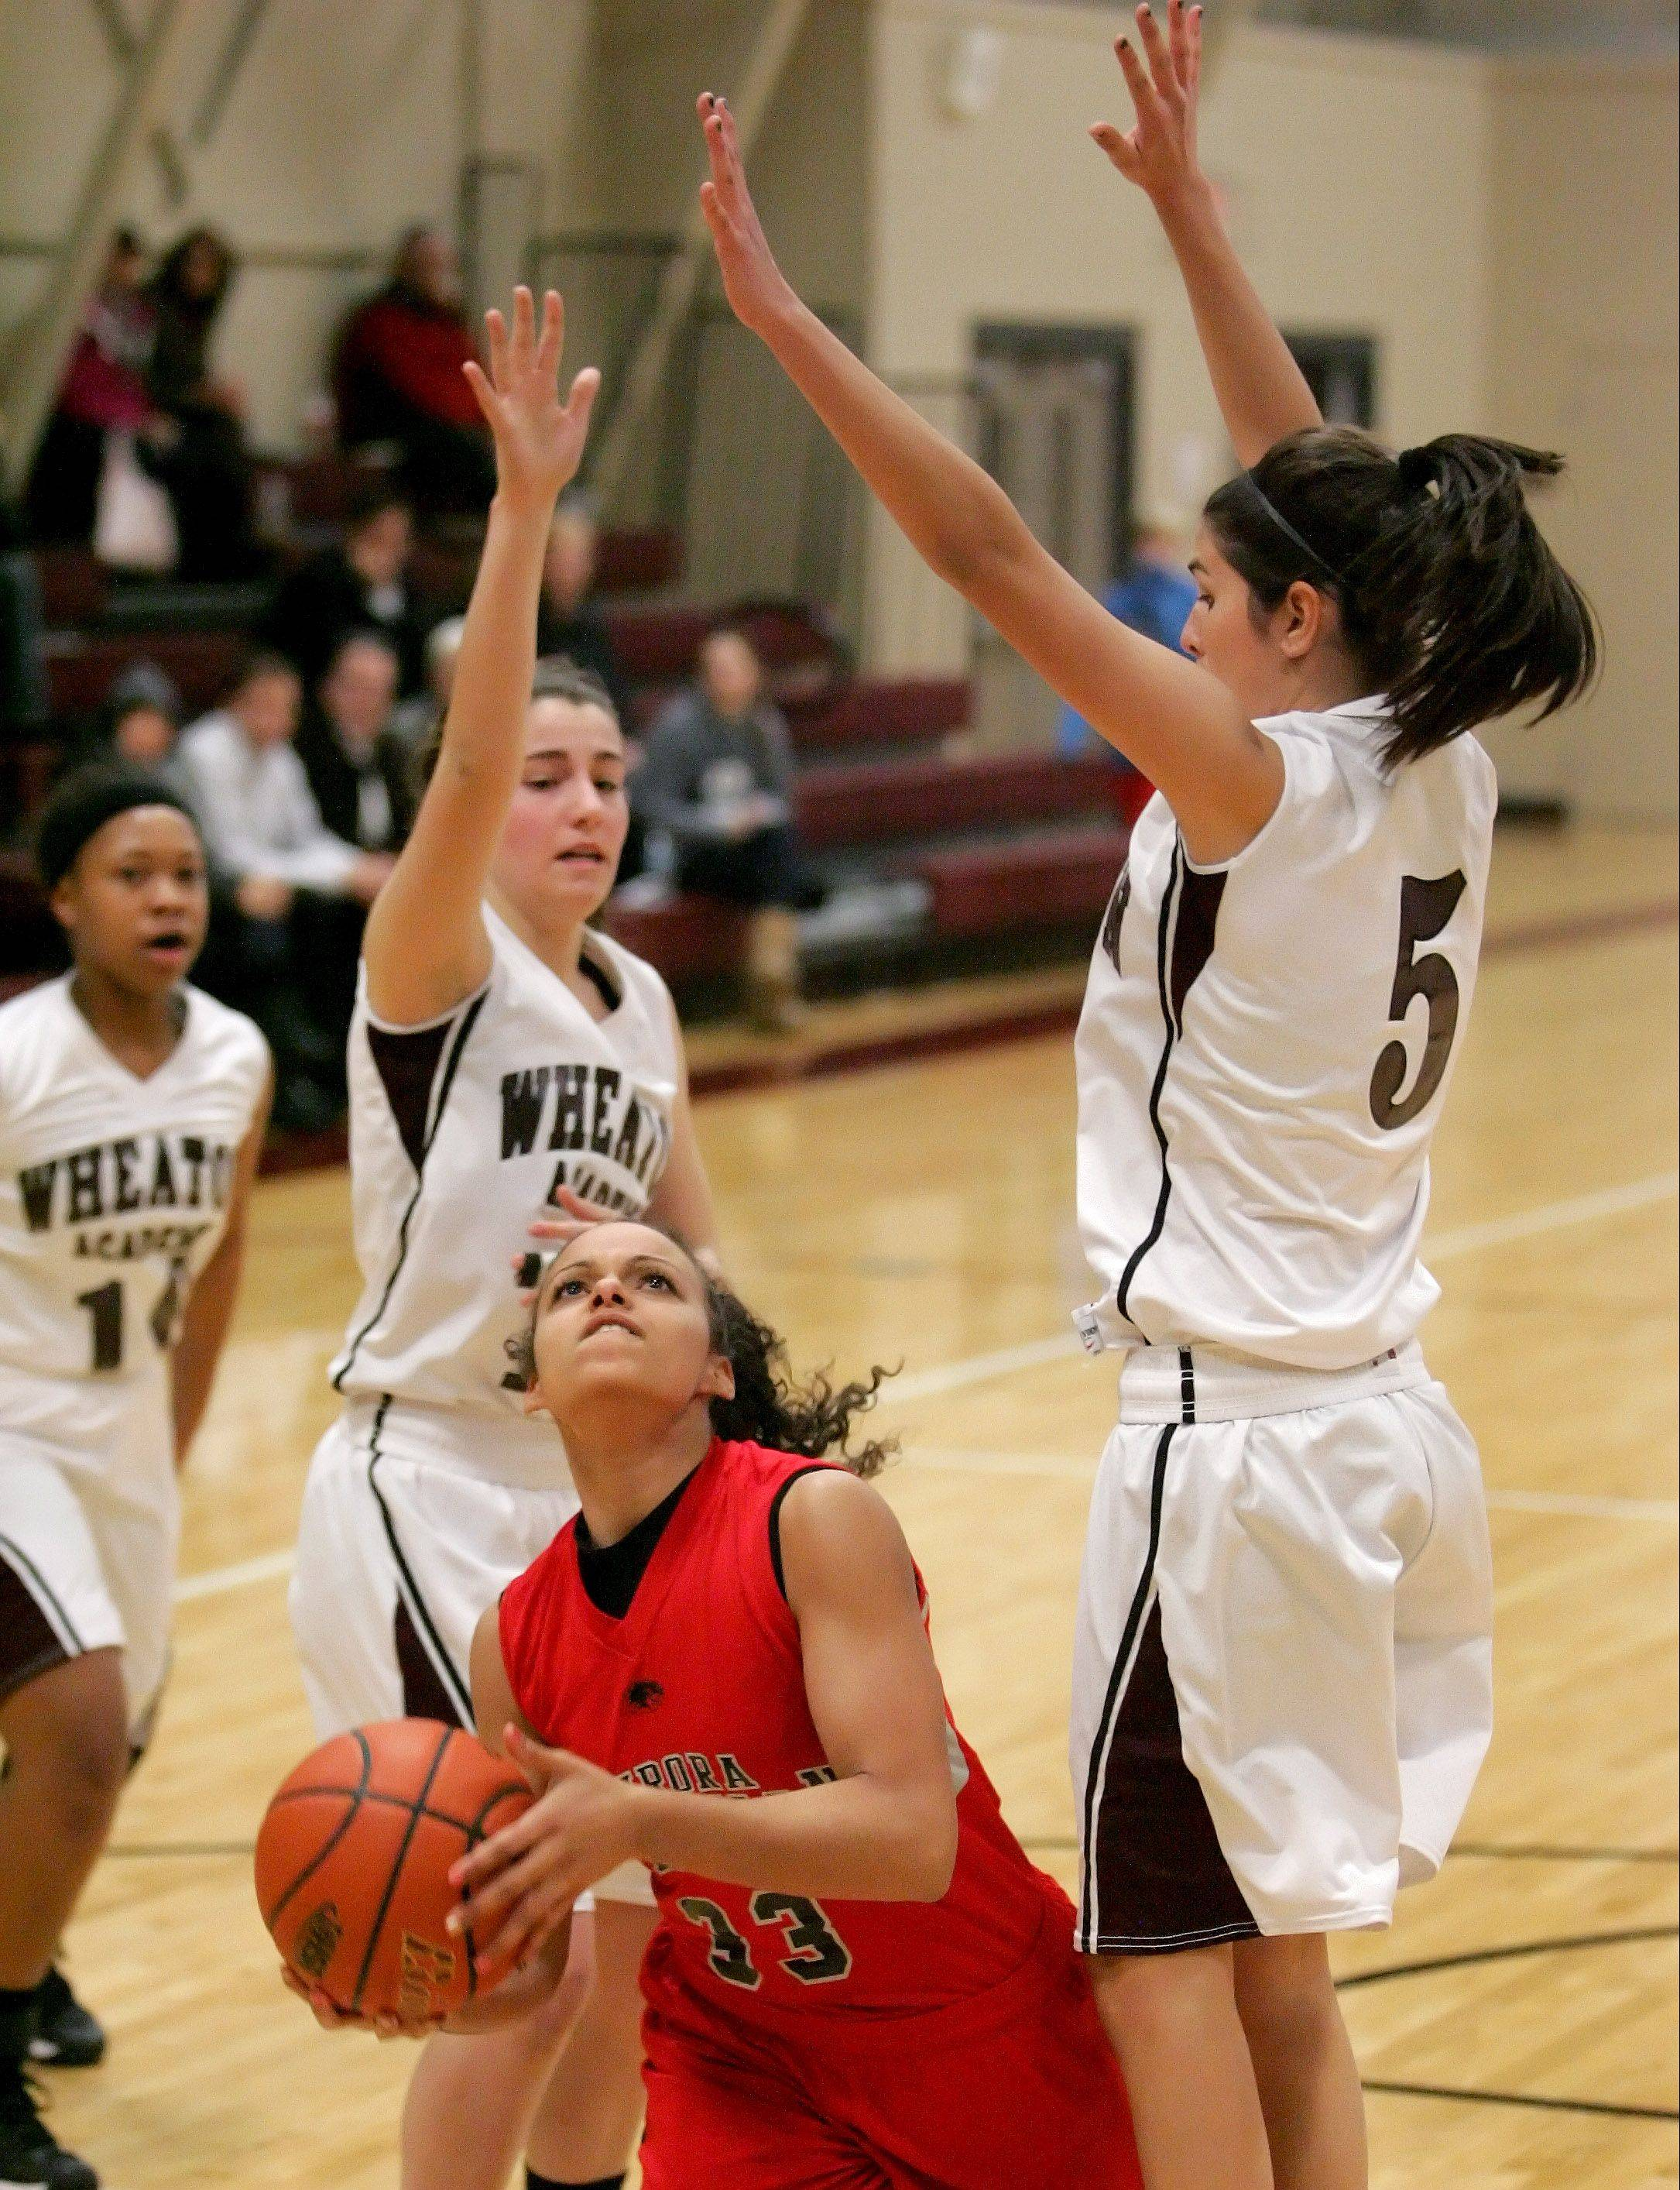 Alyssa Andersen averaged over 16 points a game as a junior for Aurora Christian last year.